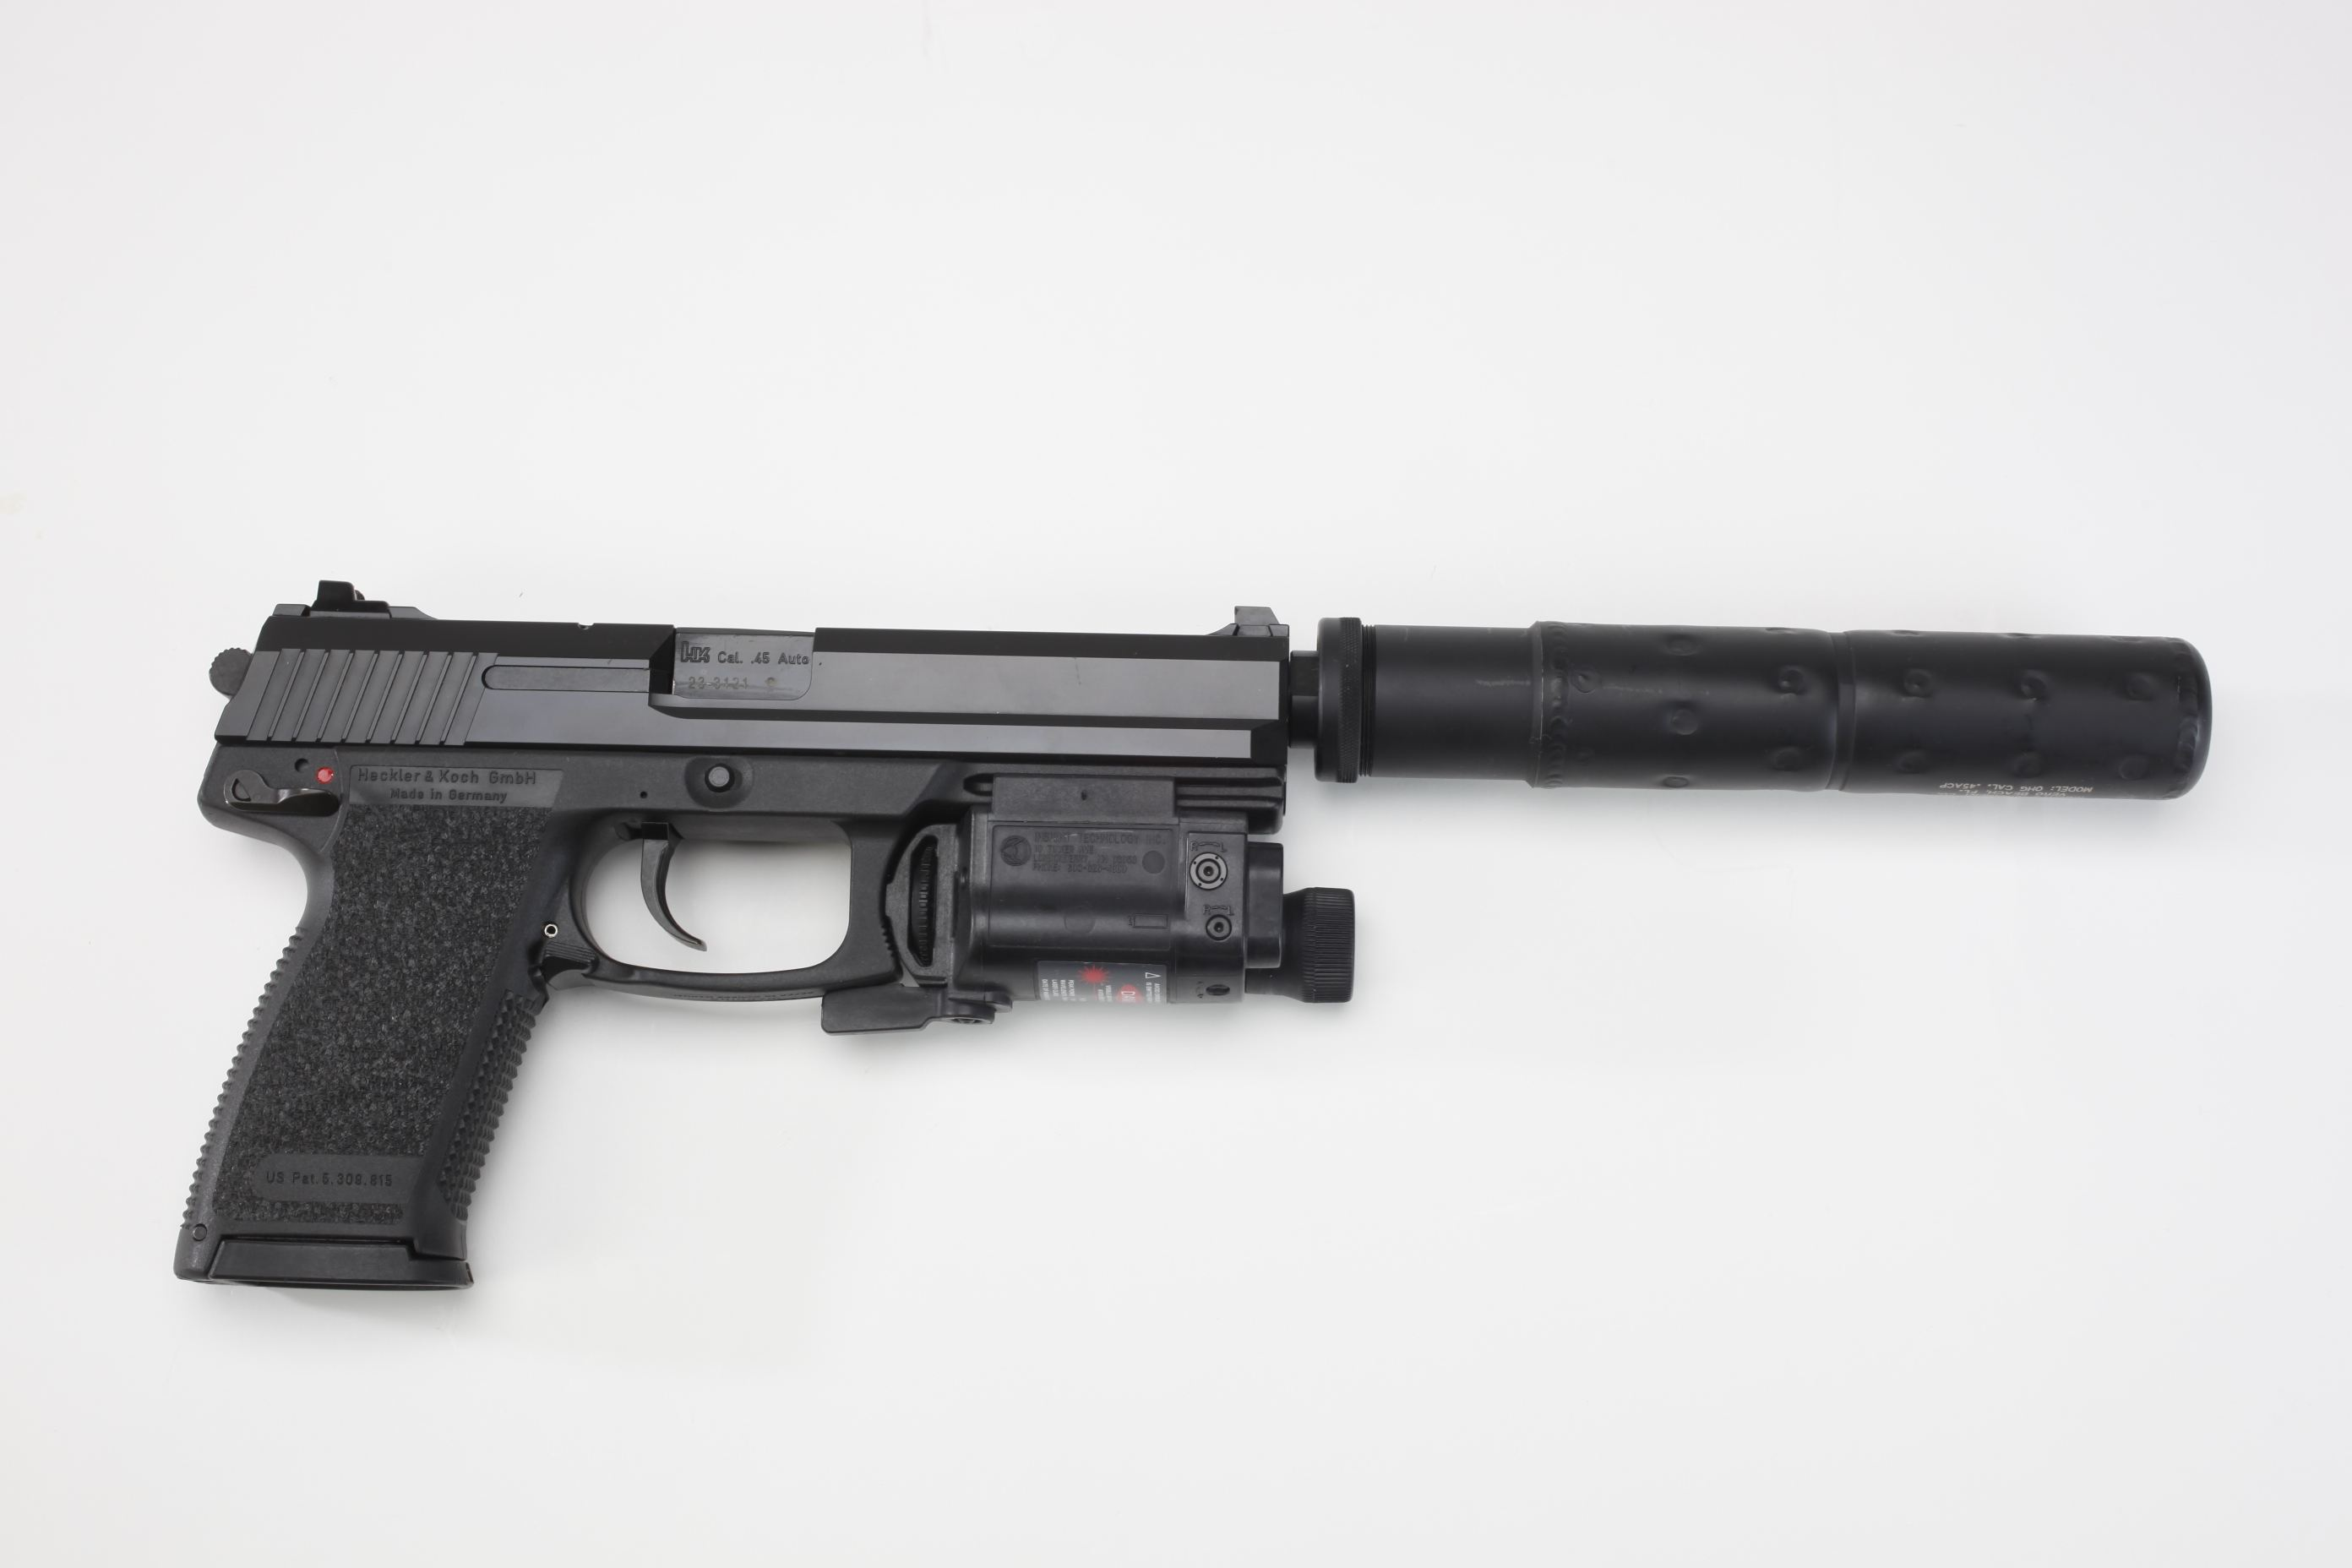 Heckler & Koch Mark 23 Offensive Handgun System with suppressor